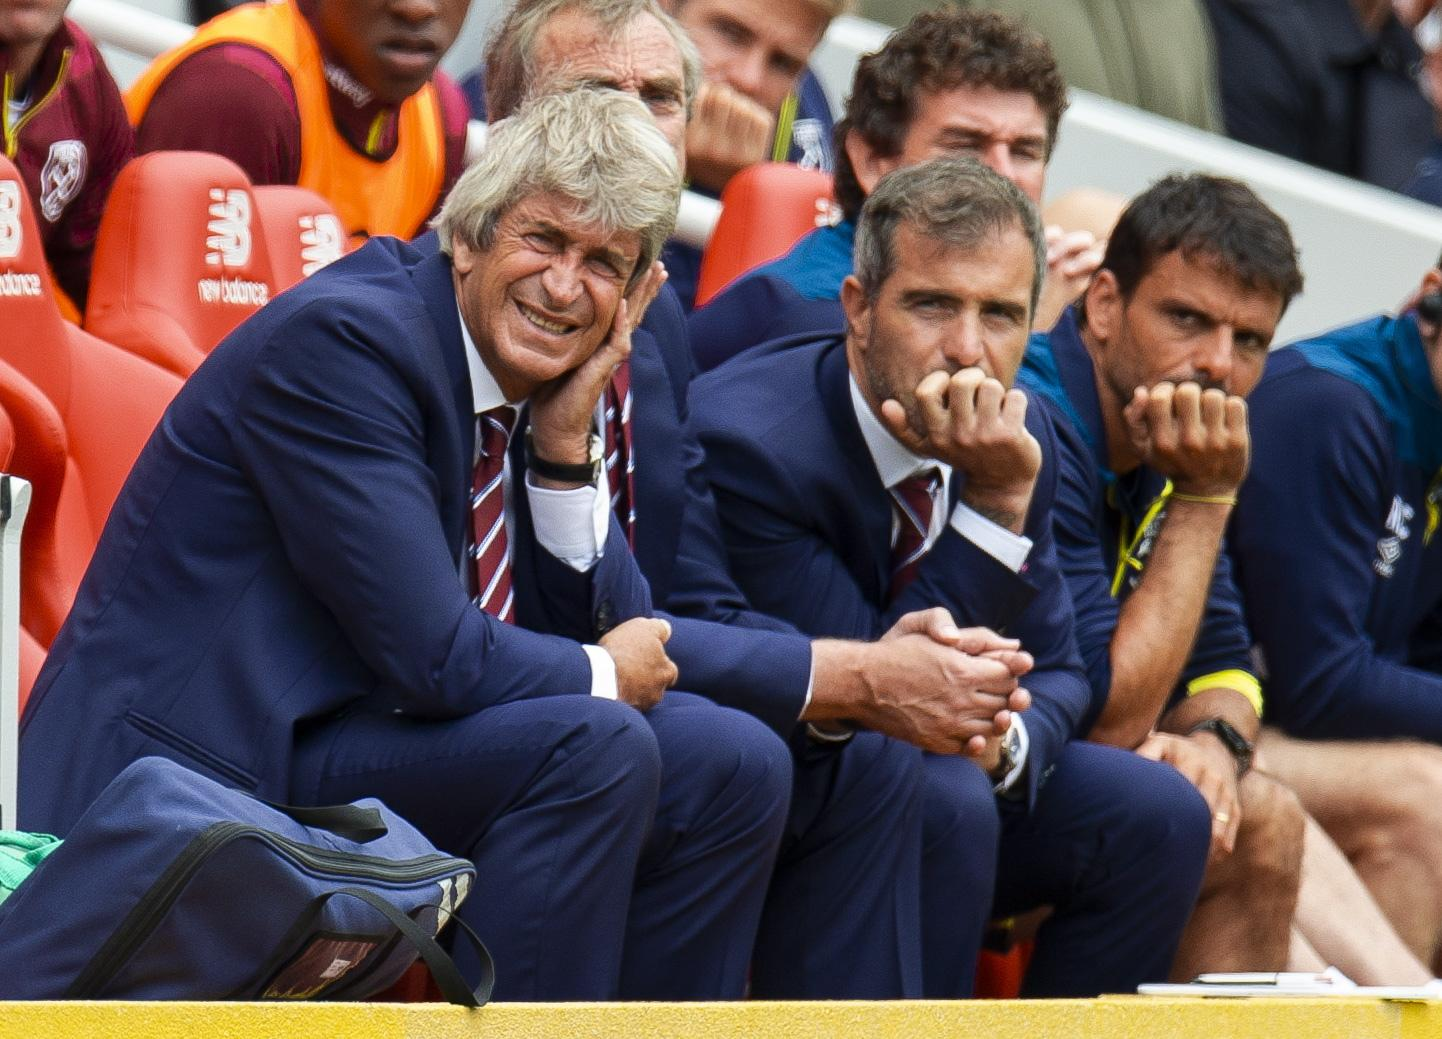 It was a hard first day of the season for Pellegrini